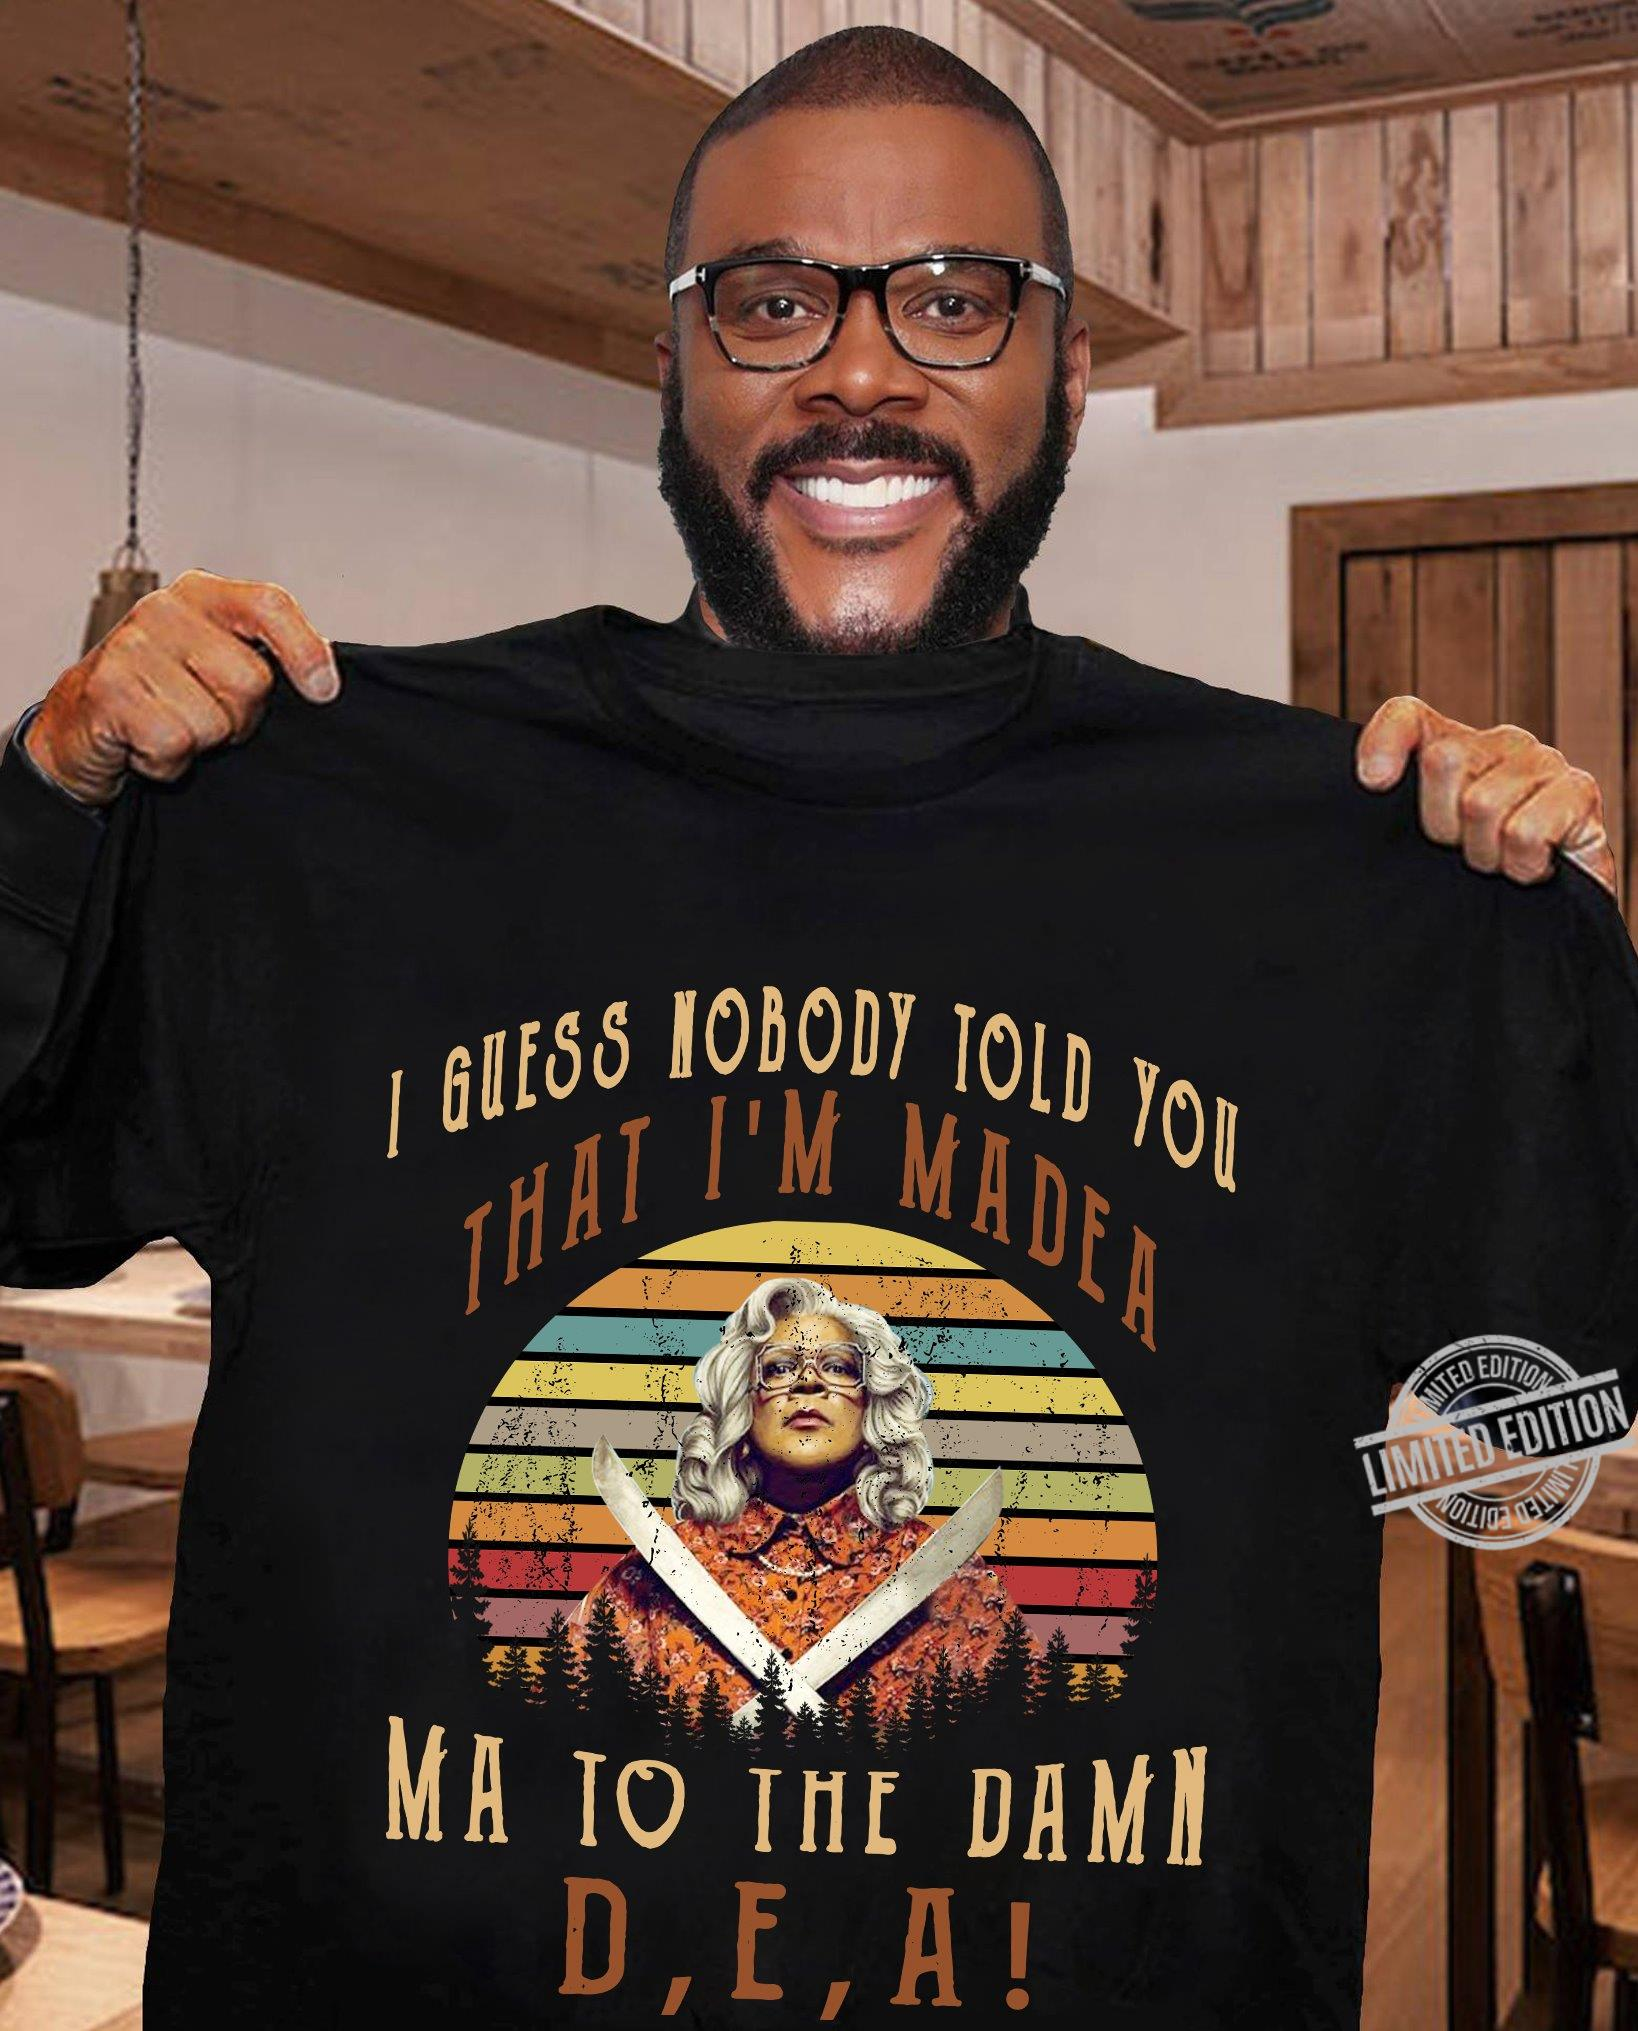 I Guess Nobody Told You That I'm Made A Ma To The Damn D E A Shirt